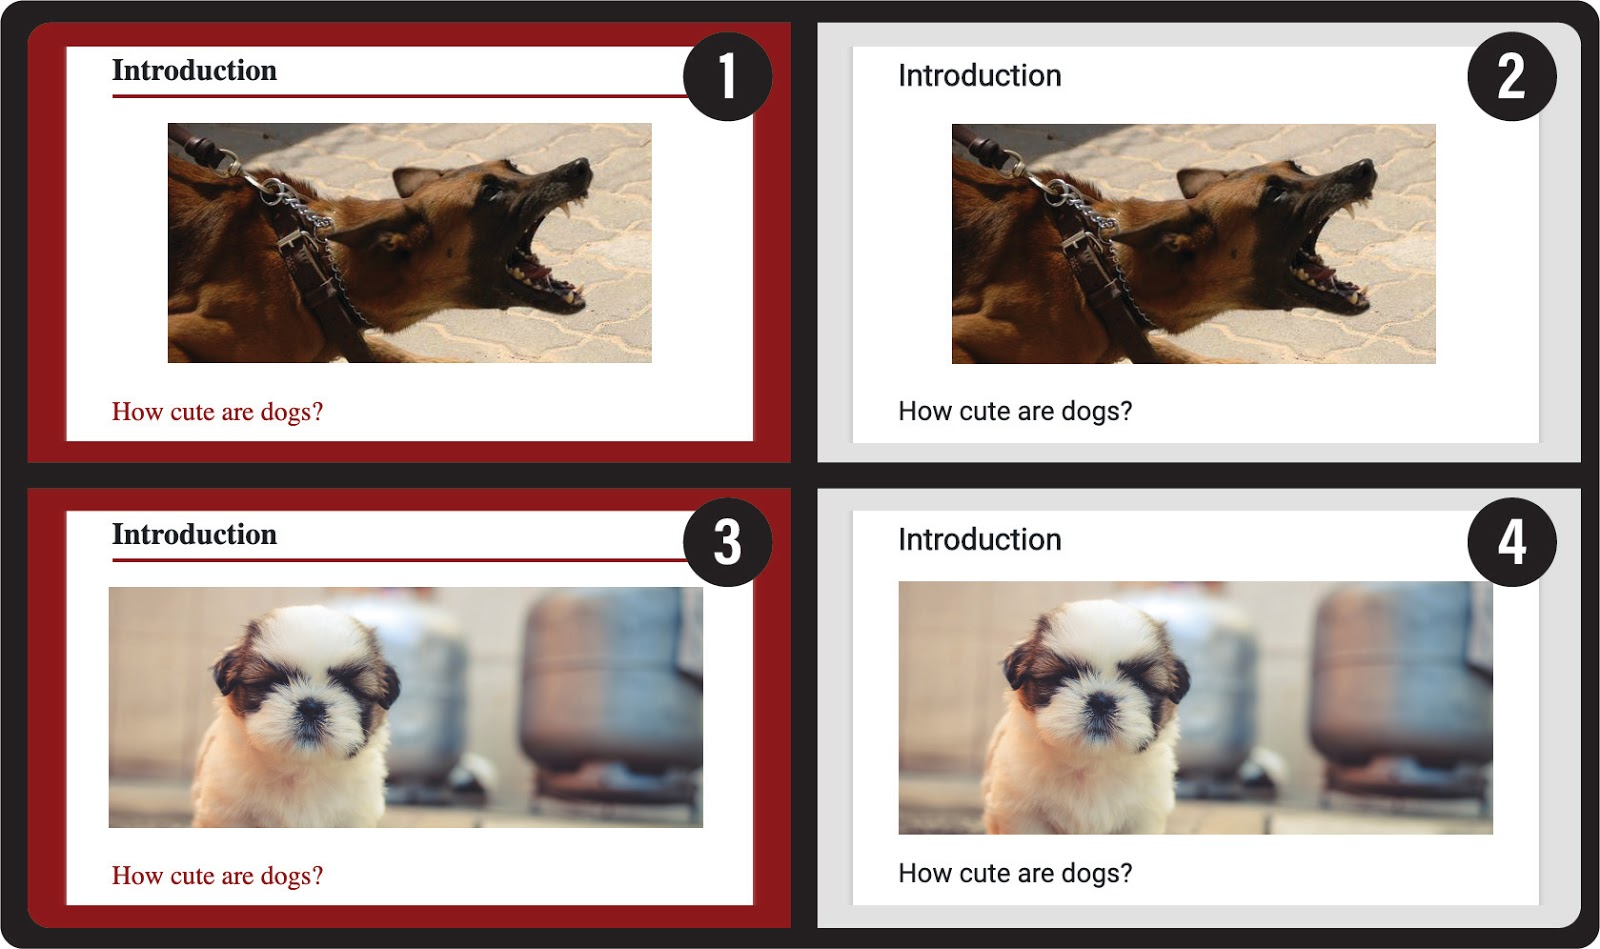 Dog images showing variations on color and contrast